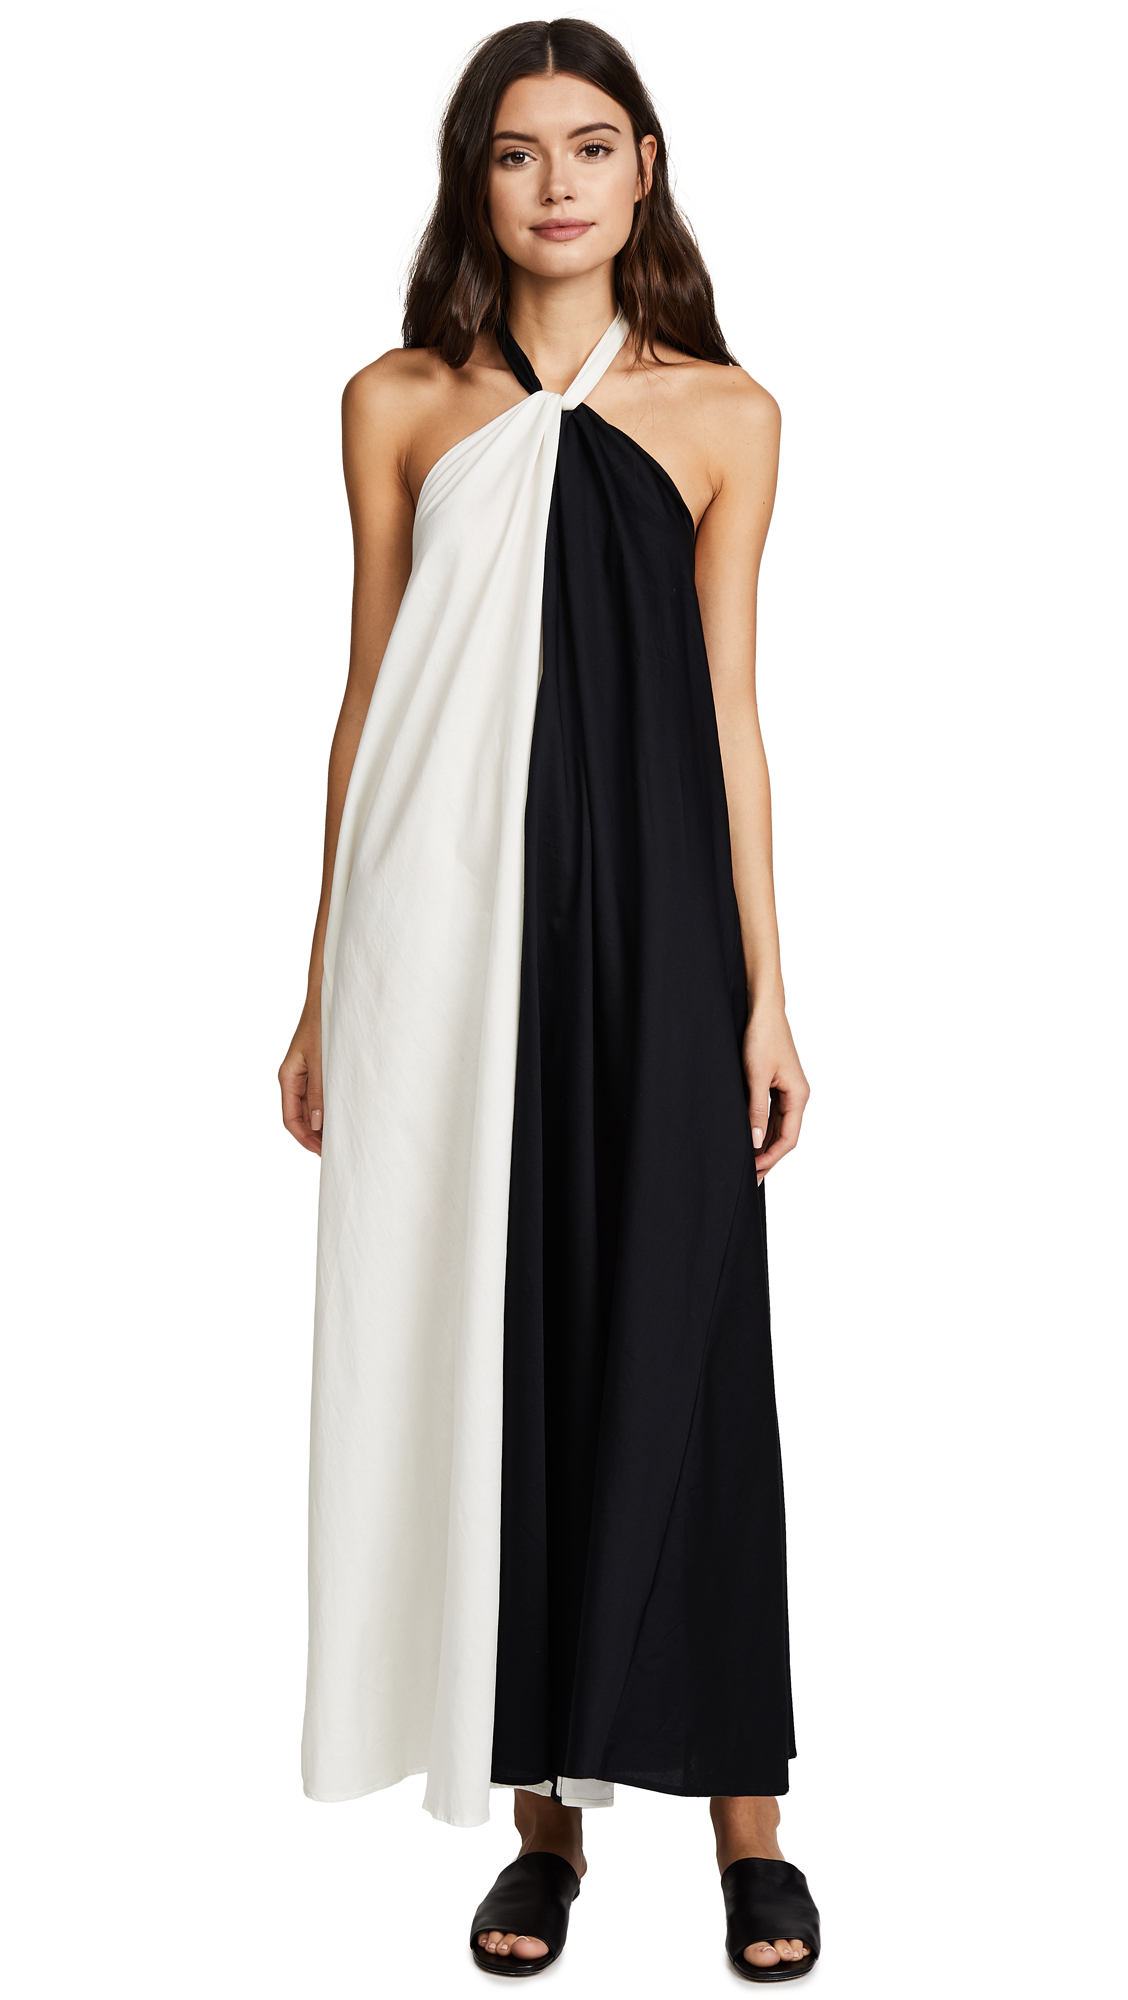 Mara Hoffman Lucille Dress - Black/Cream